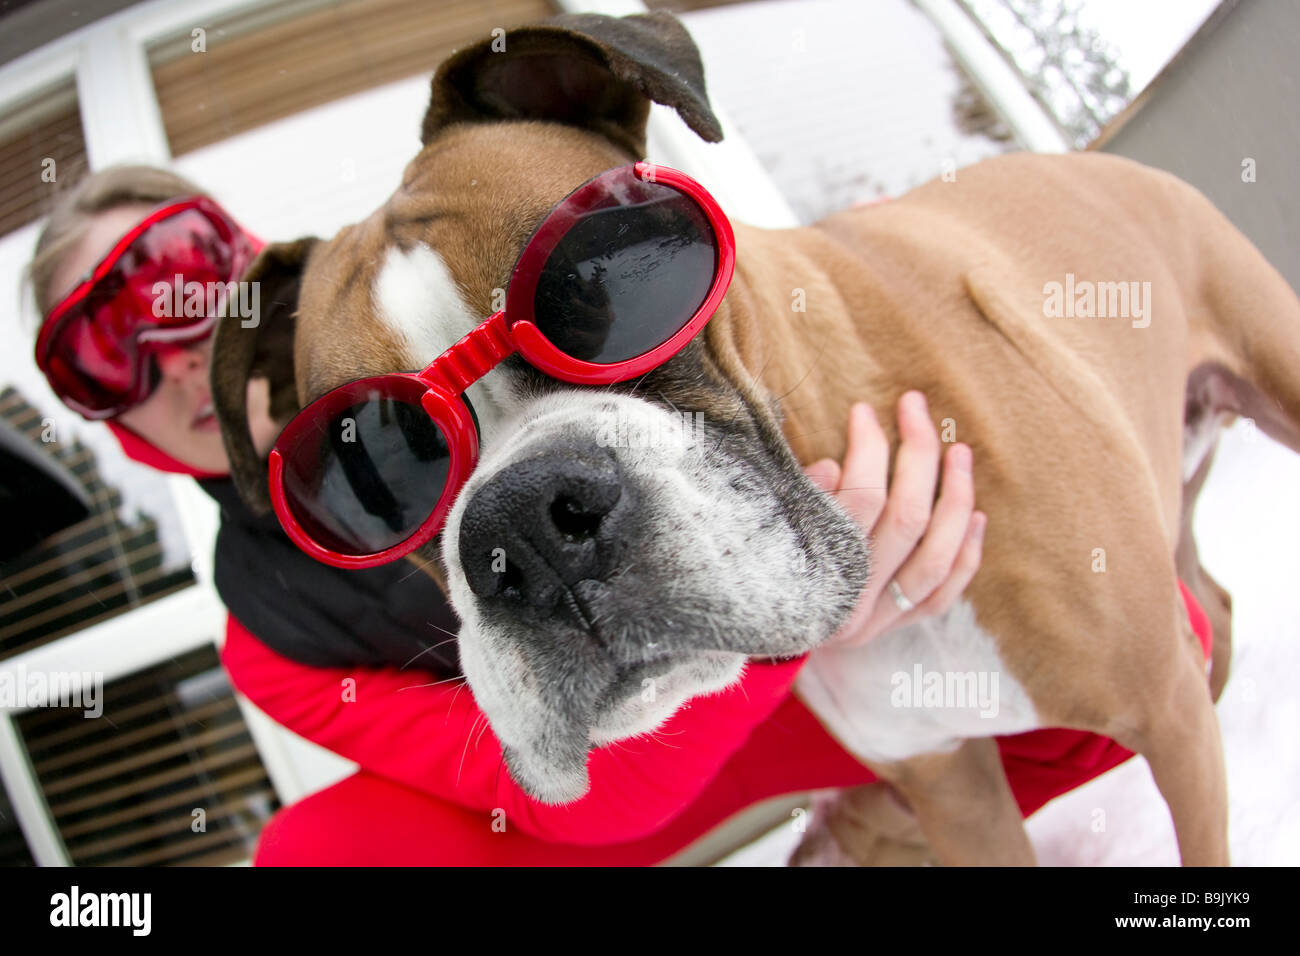 Close up of a young woman and a boxer dog wearing goggles in the snow. - Stock Image